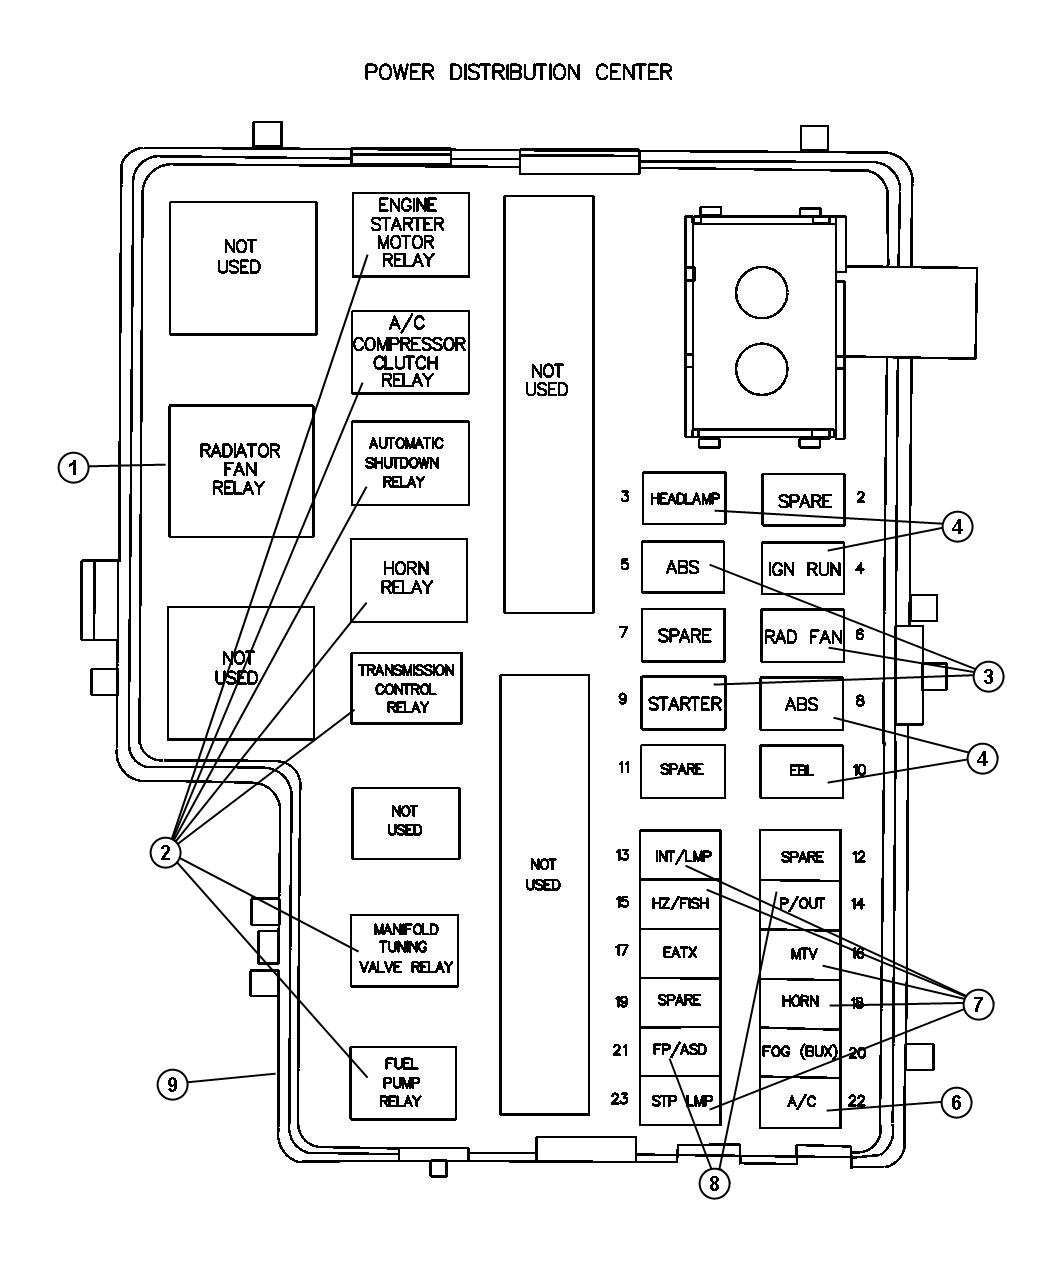 Dodge Ram Wiring Diagram Horn on 1995 Toyota Camry Wiring Diagram